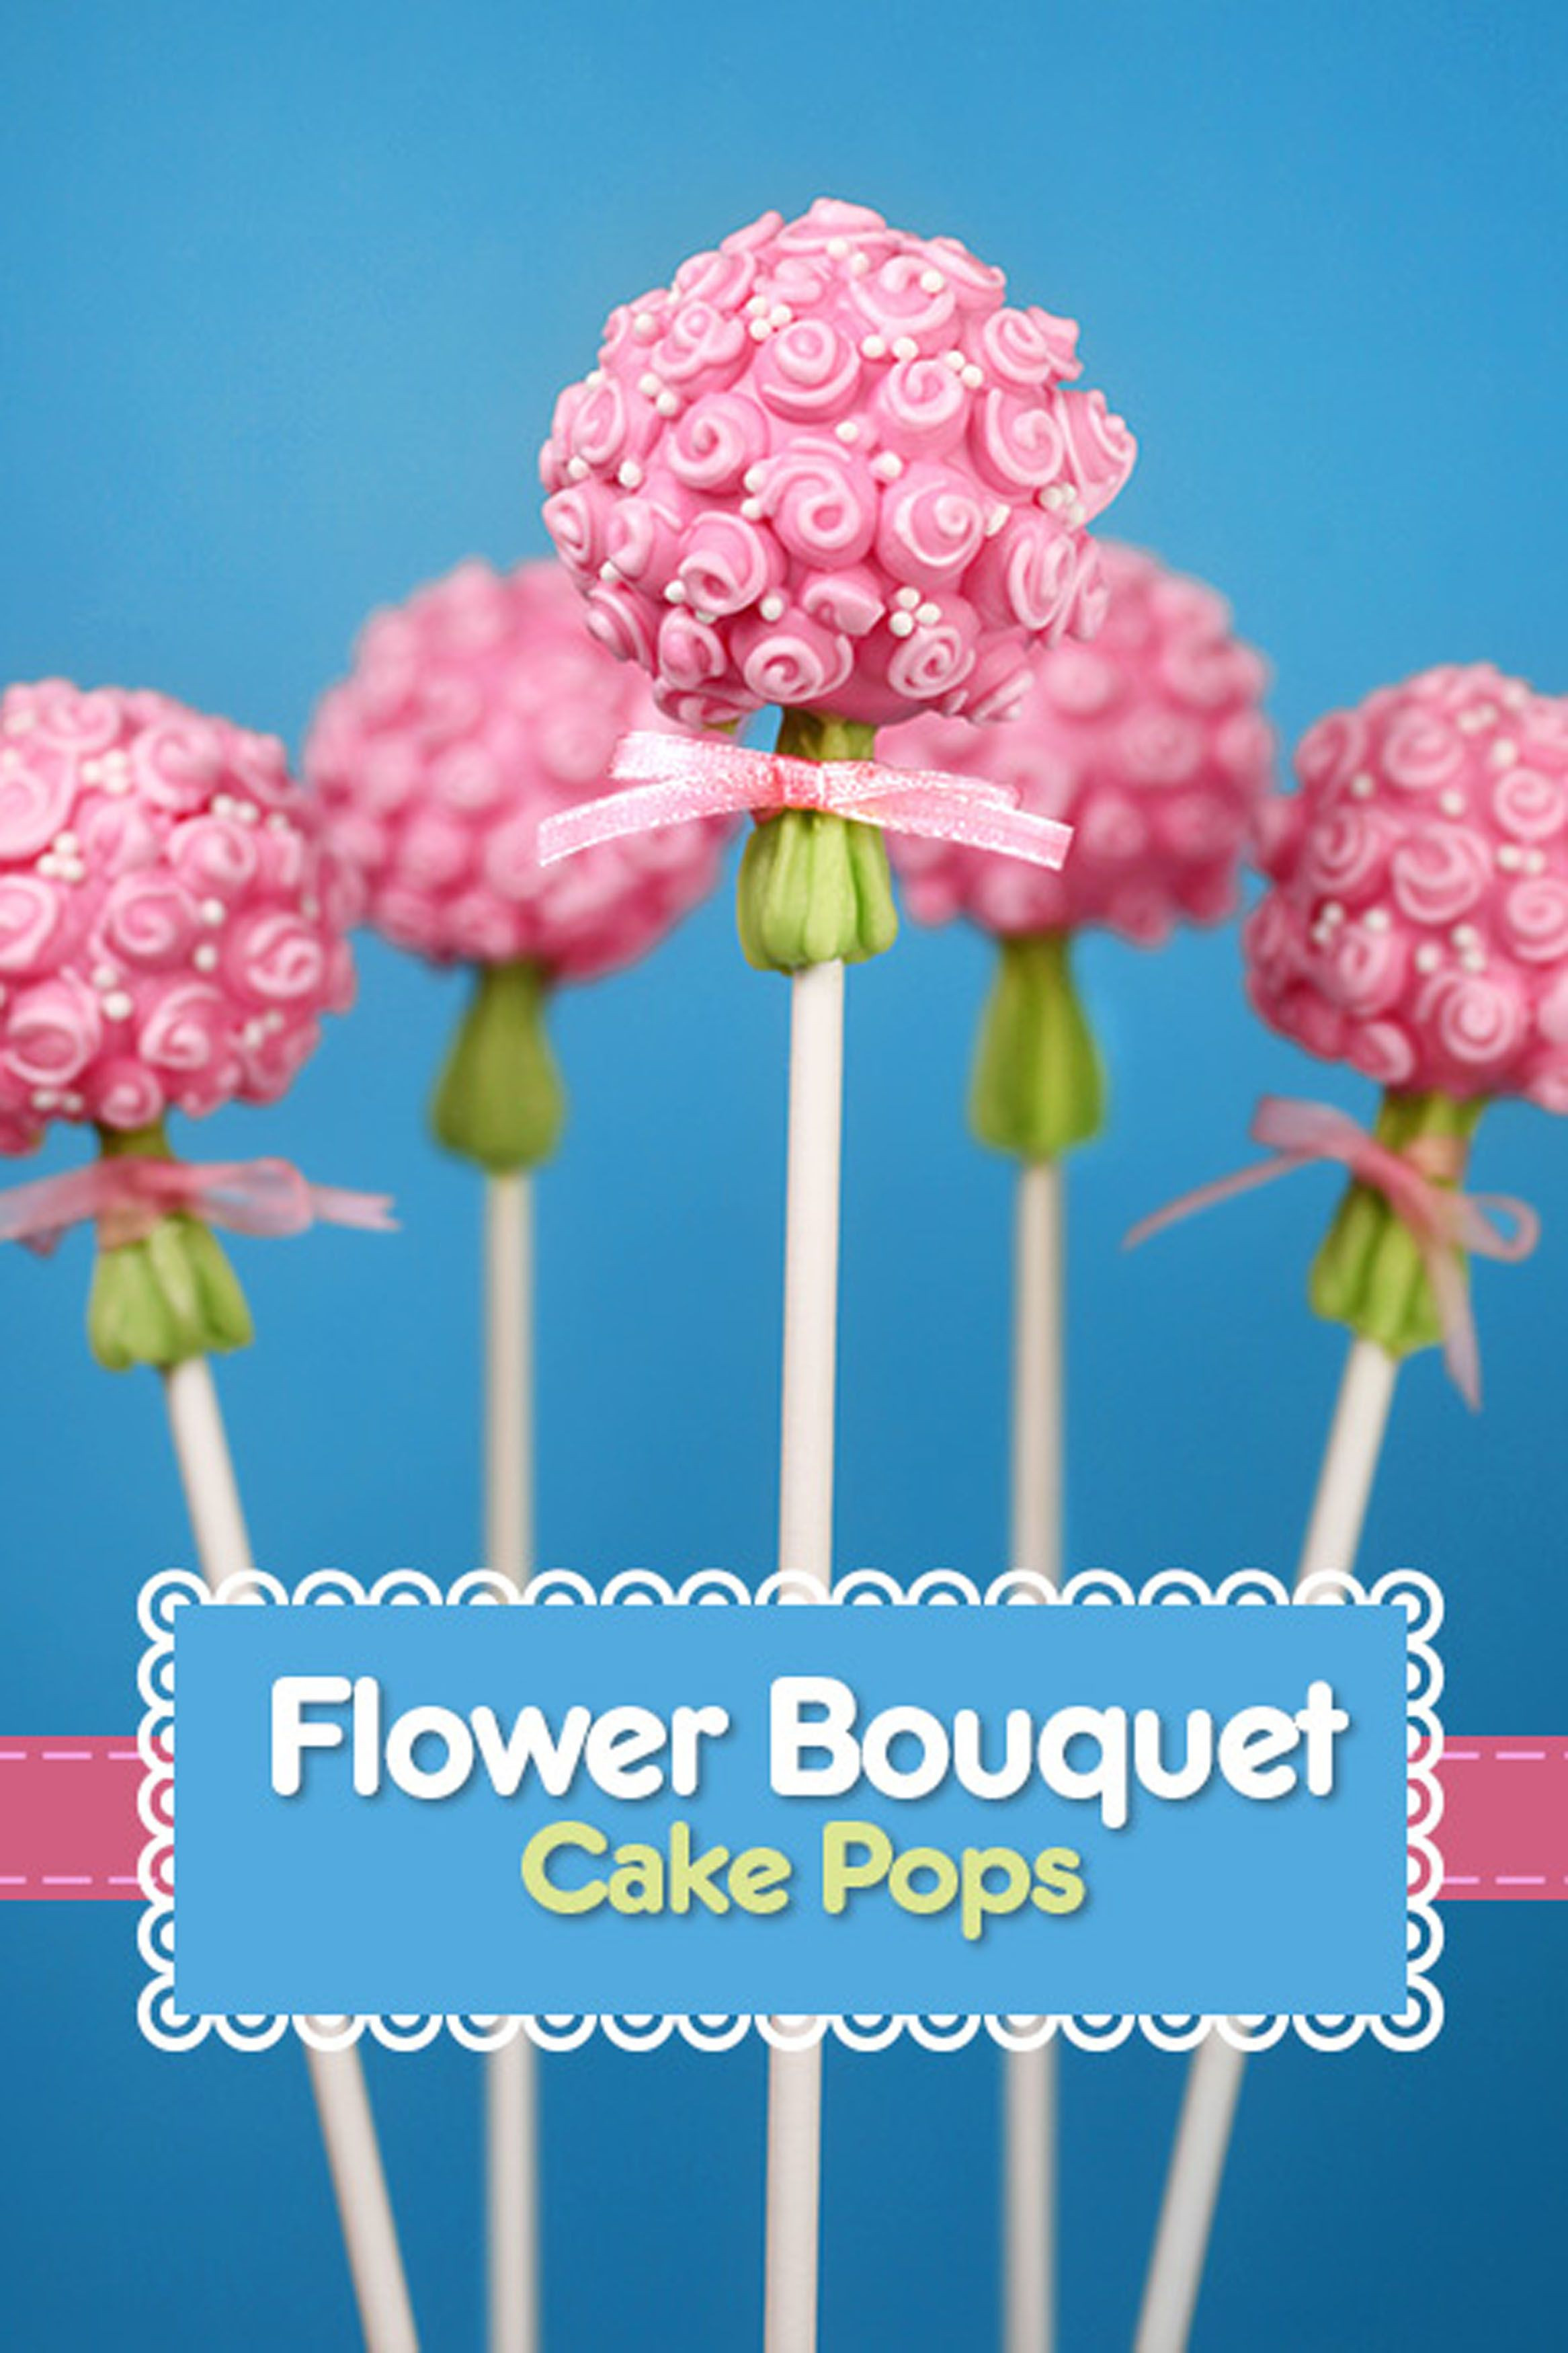 35 Easy Cake Pop Recipes How To Make Cake Pops For Every Occasion